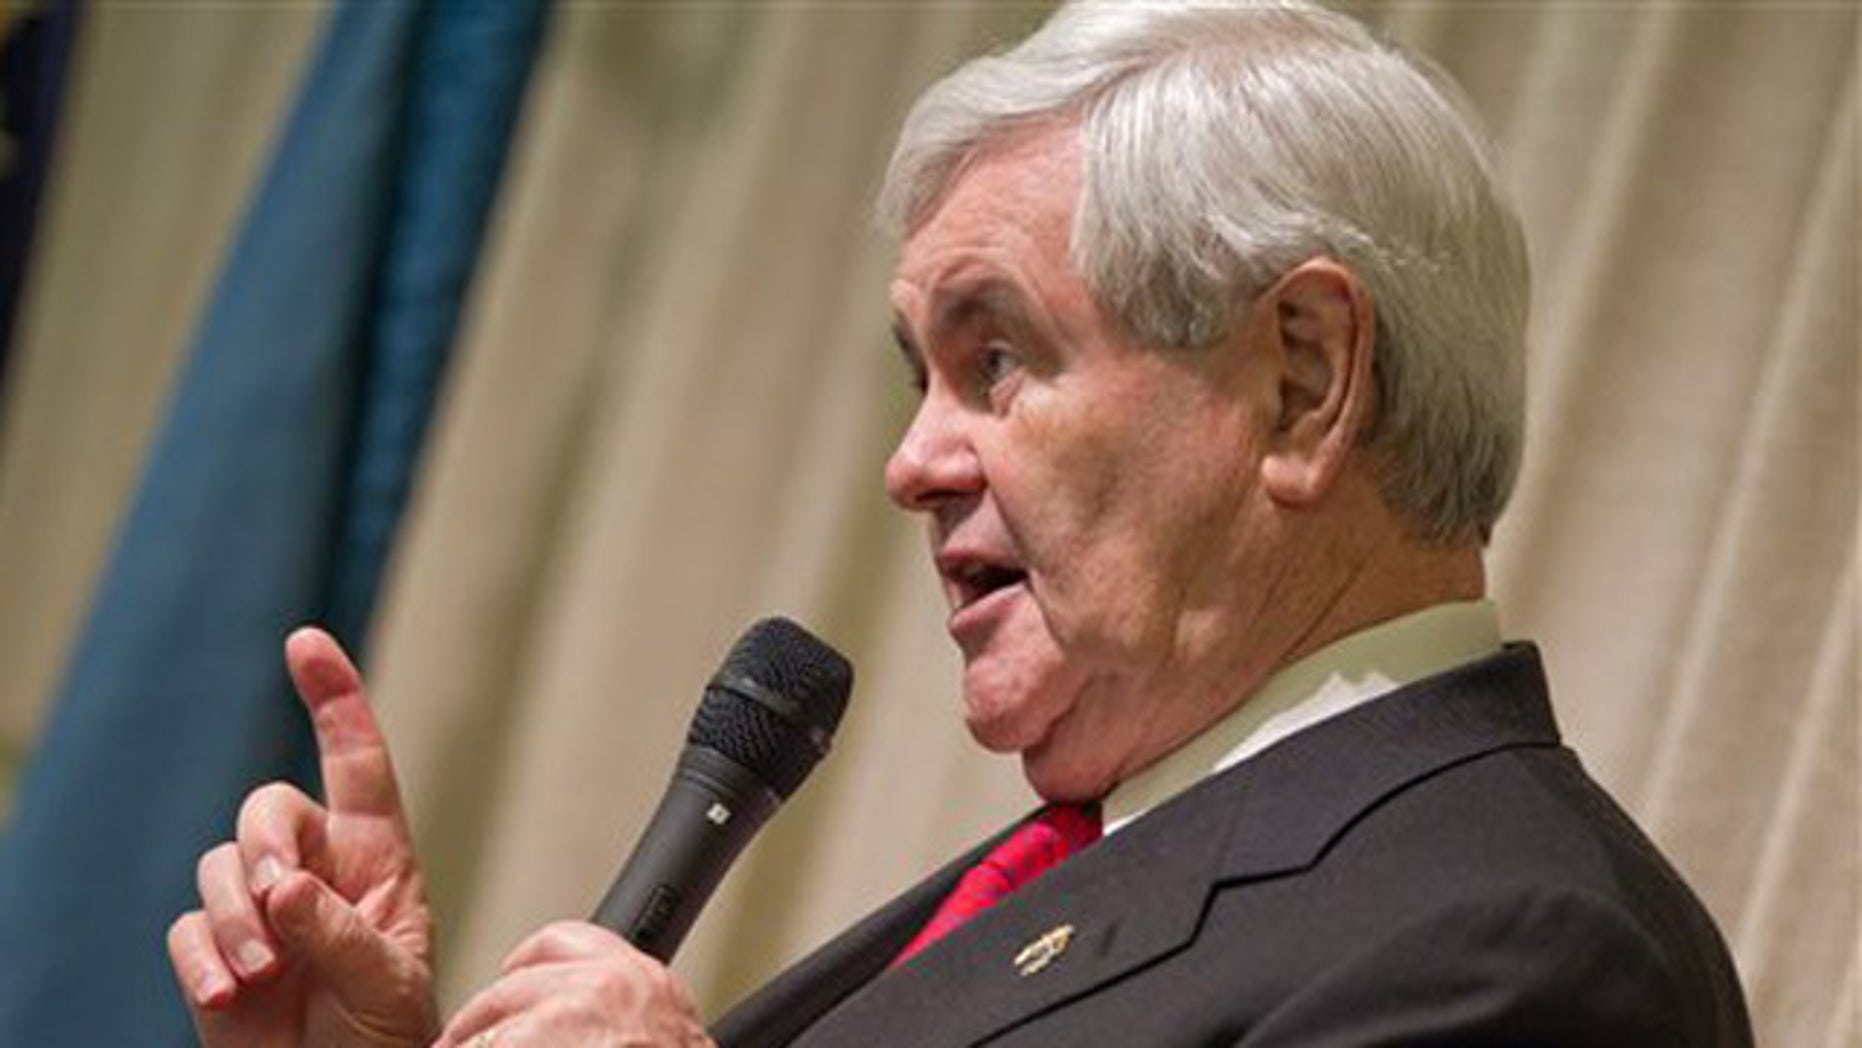 Republican presidential candidate, former House Speaker Newt Gingrich speaks during a visit to the Newark Senior Center, Wednesday, April 11, 2012, in Newark, Del. (AP Photo/The Wilmington News-Journal, Robert Craig)  NO SALES